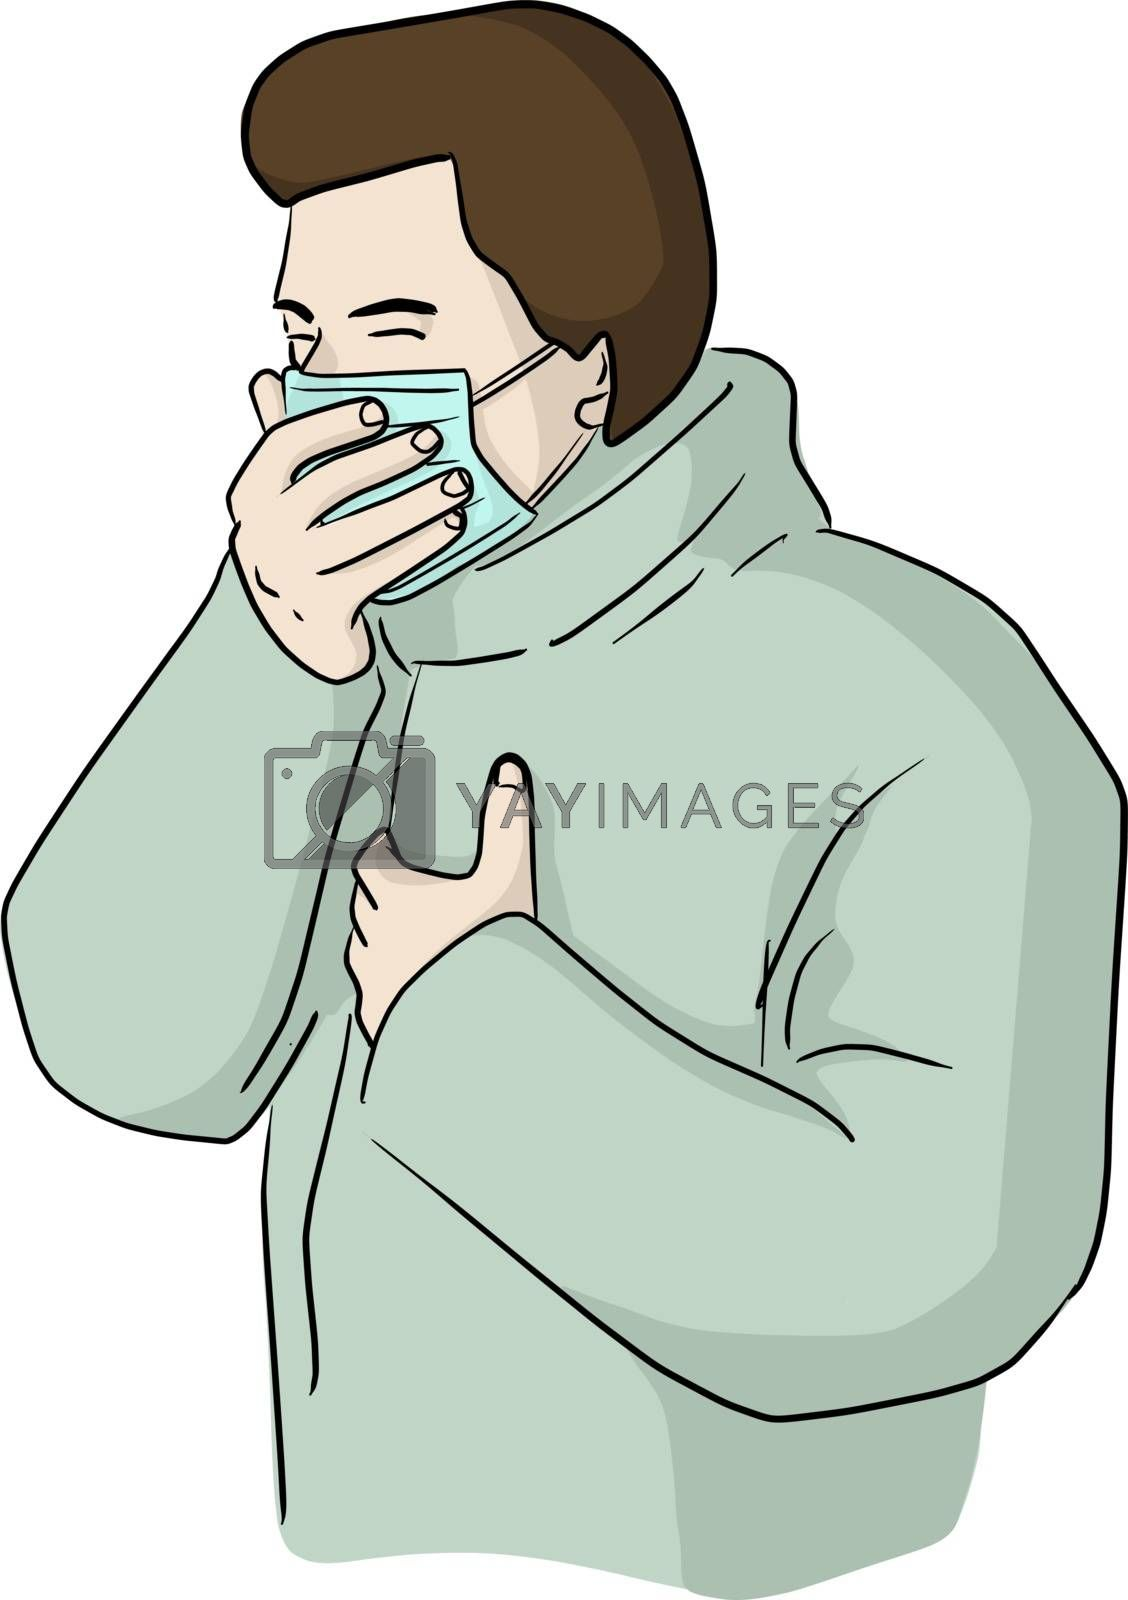 Male patient wearing surgical mask coughing vector illustration sketch doodle hand drawn isolated on white background